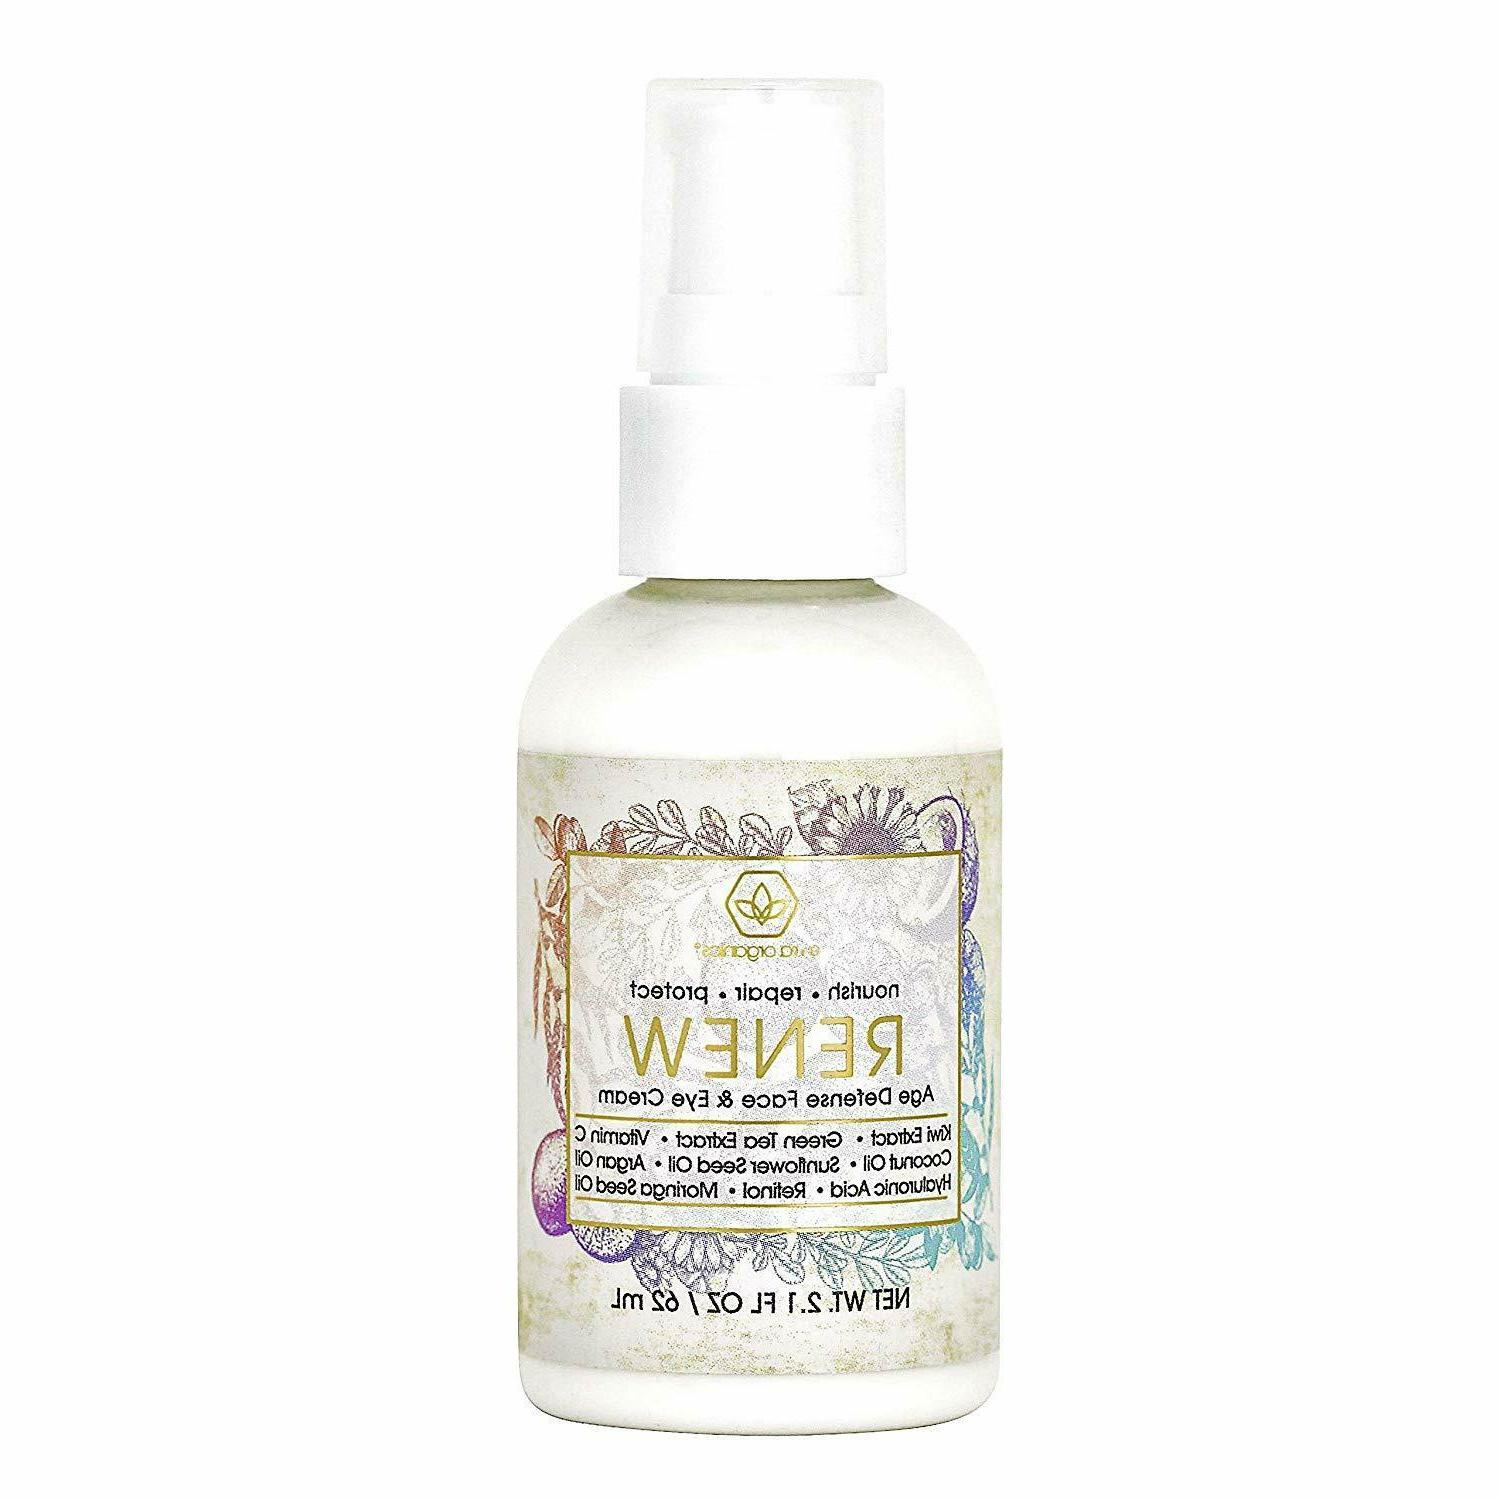 renew anti aging face and eye moisturizer